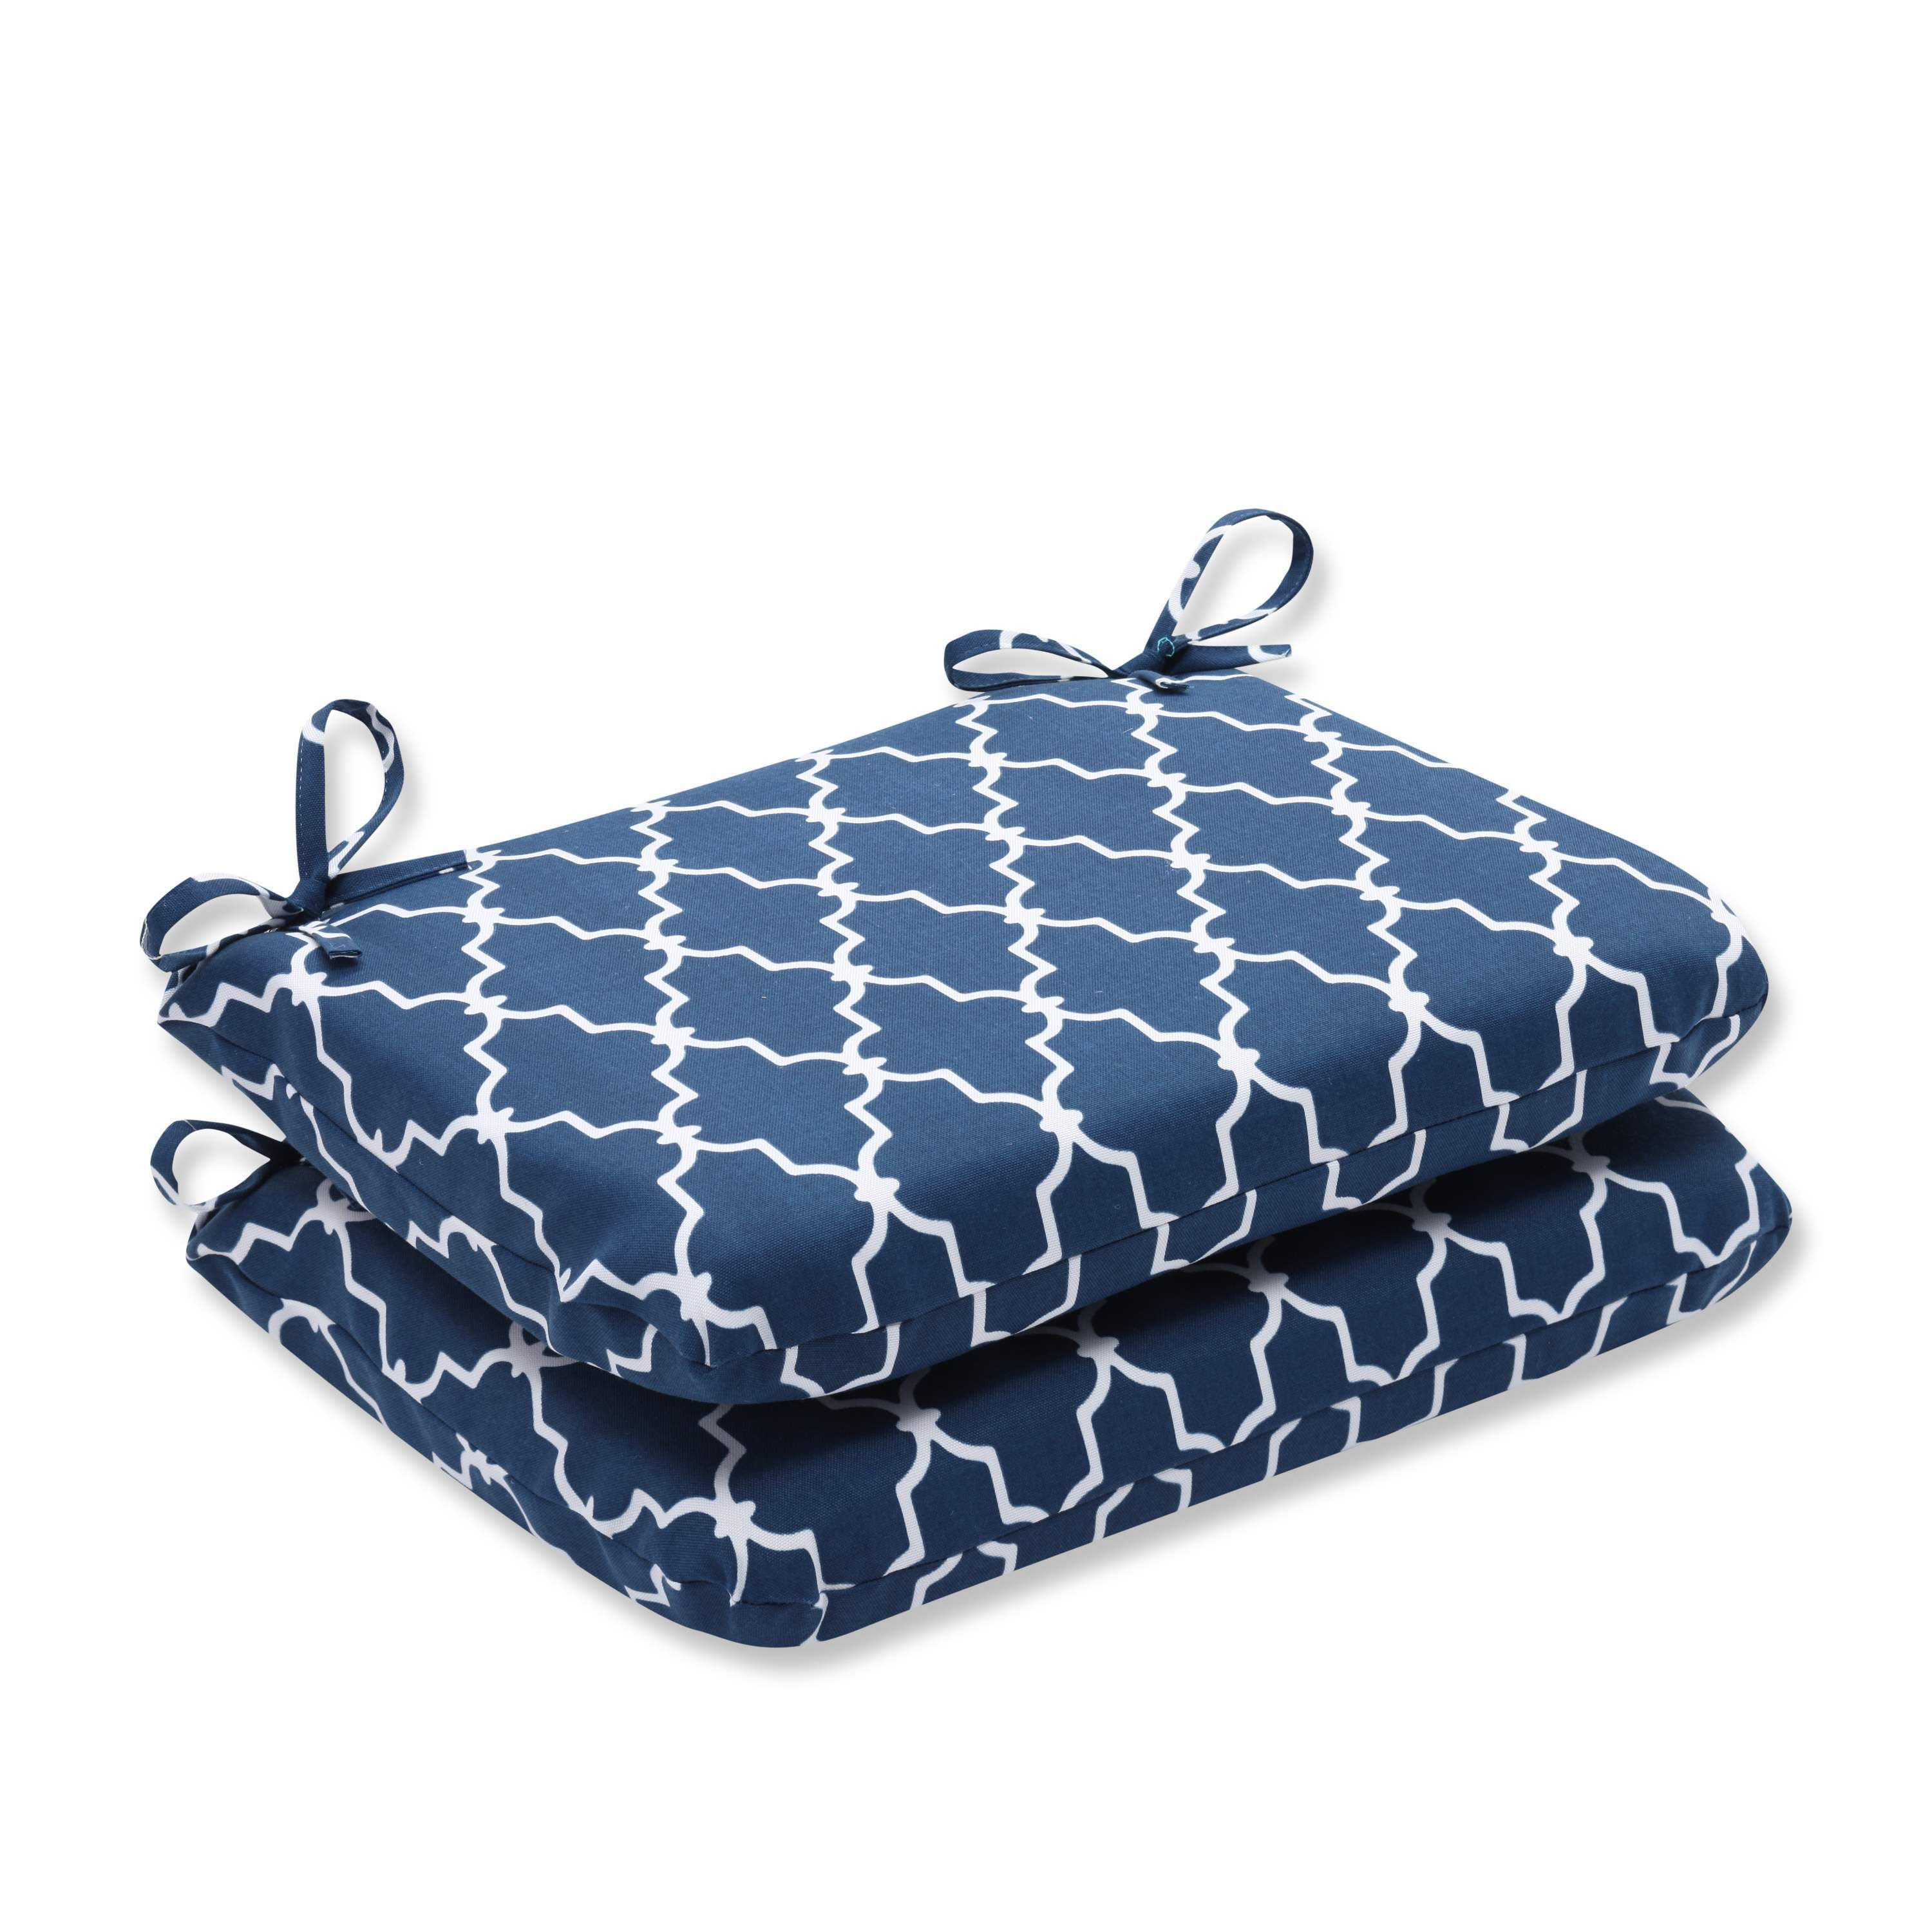 Pillow Perfect Outdoor/ Indoor Garden Gate Navy Rounded Corners Seat Cushion